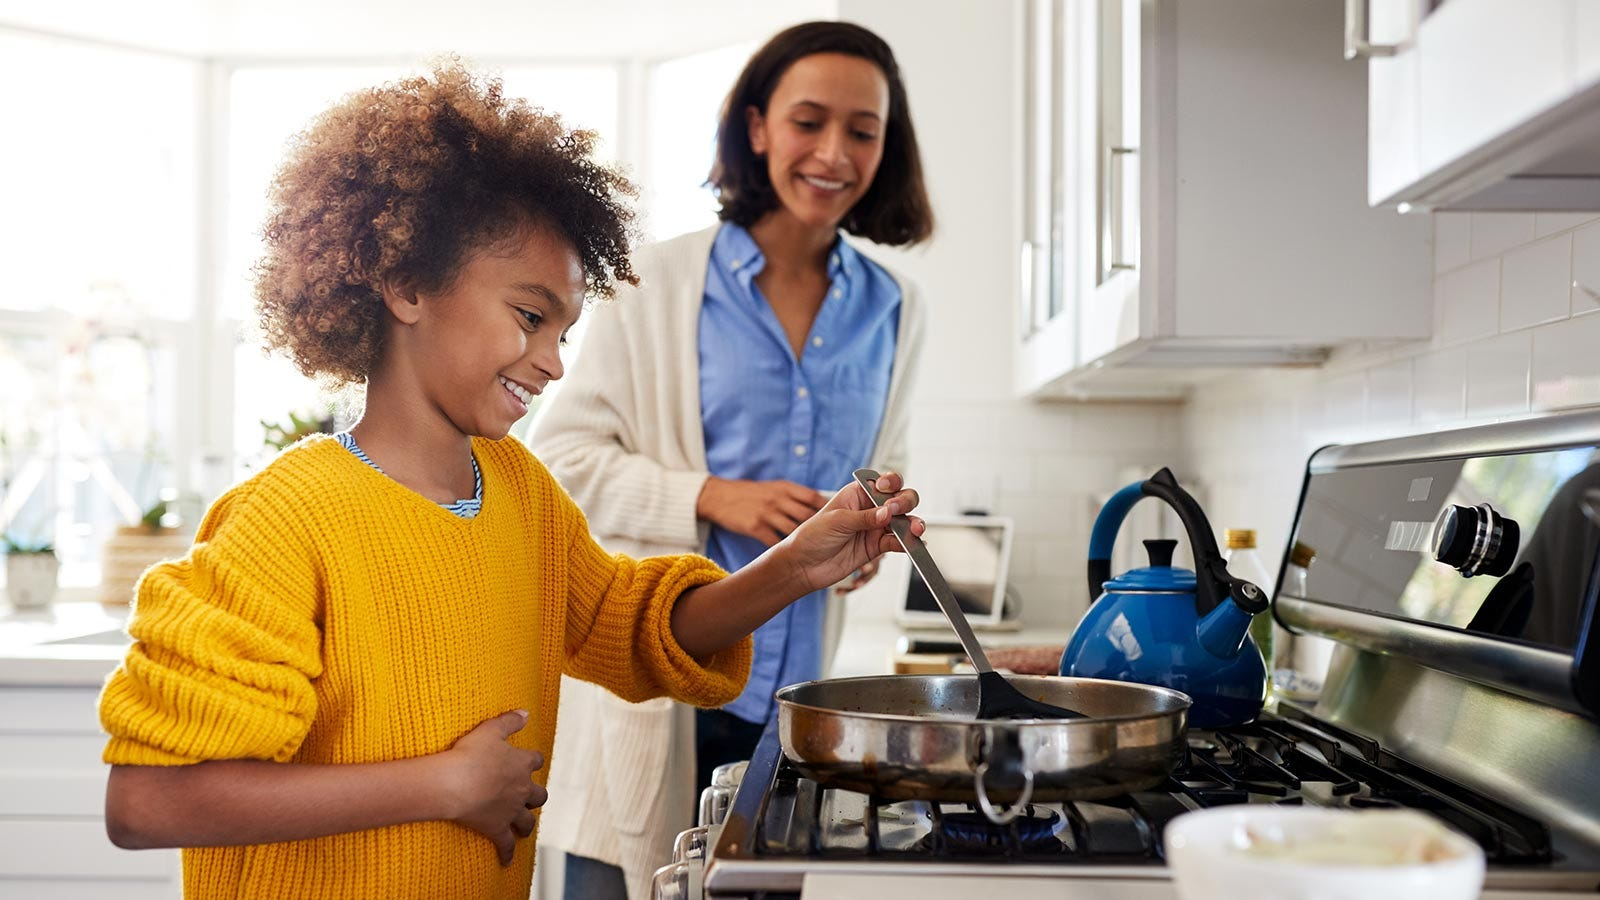 A mother supervises her daughter, as she cooks on the stove.